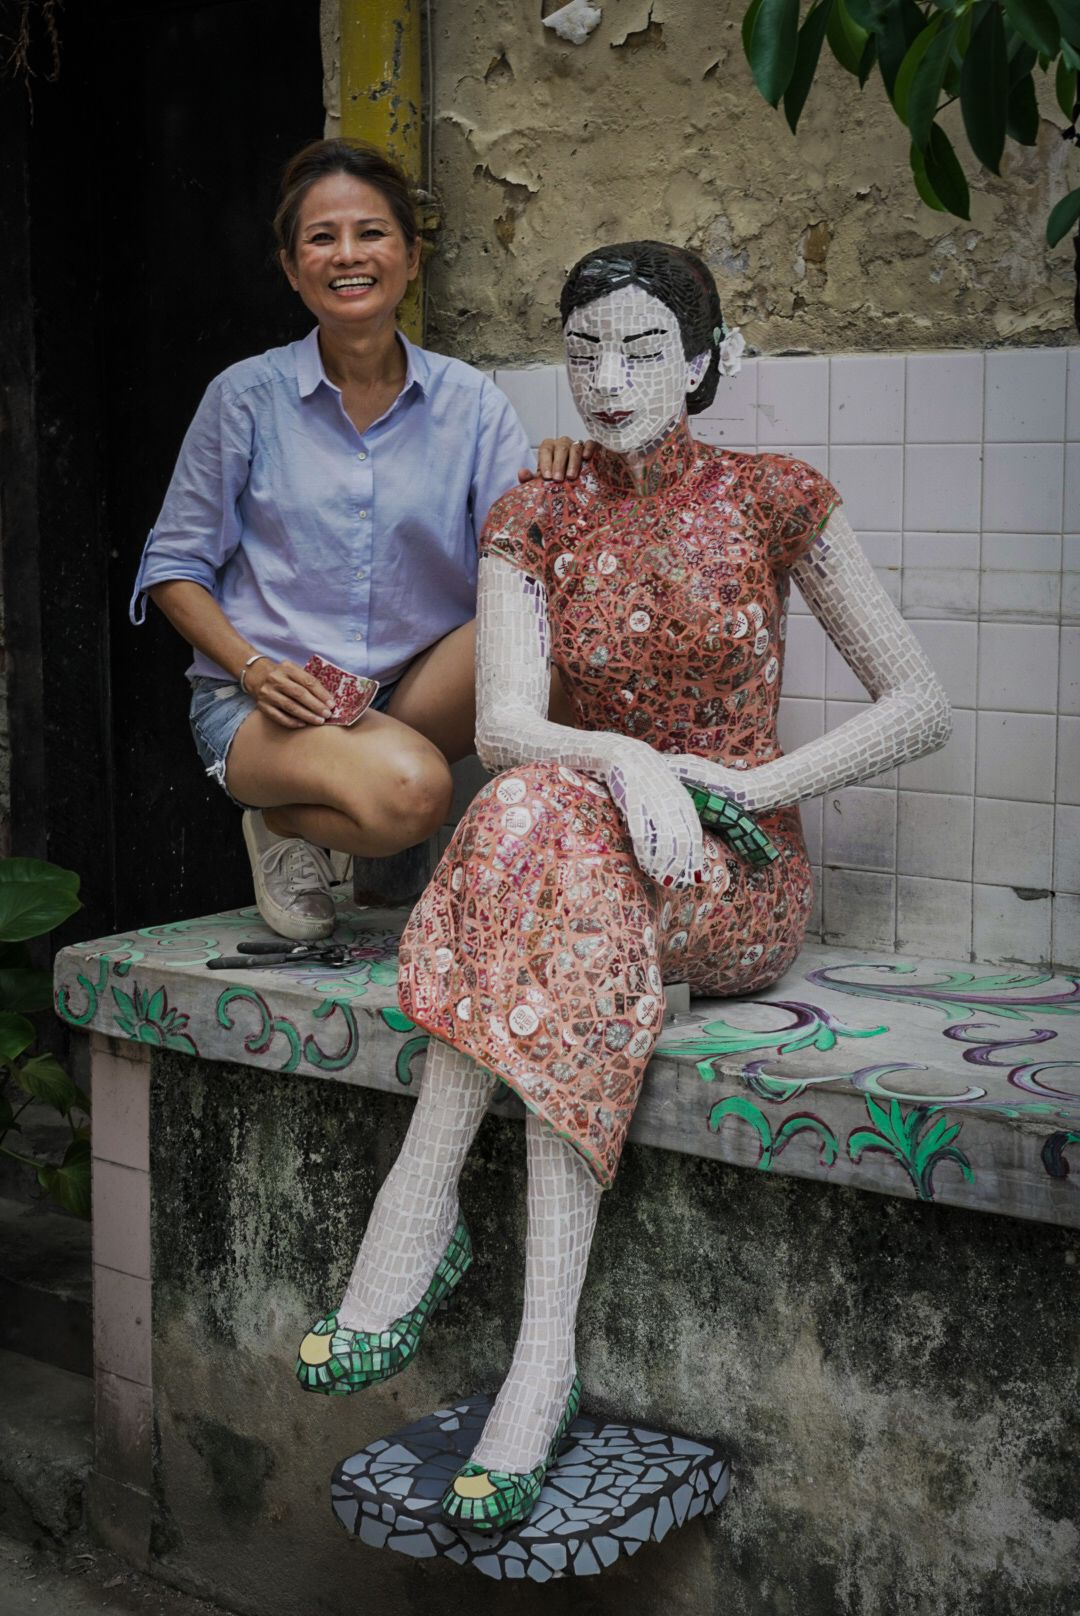 Alice Chang with her sculpture 'The Lady' at Kwai Chai Hong in KL. Photo: Javier Chor